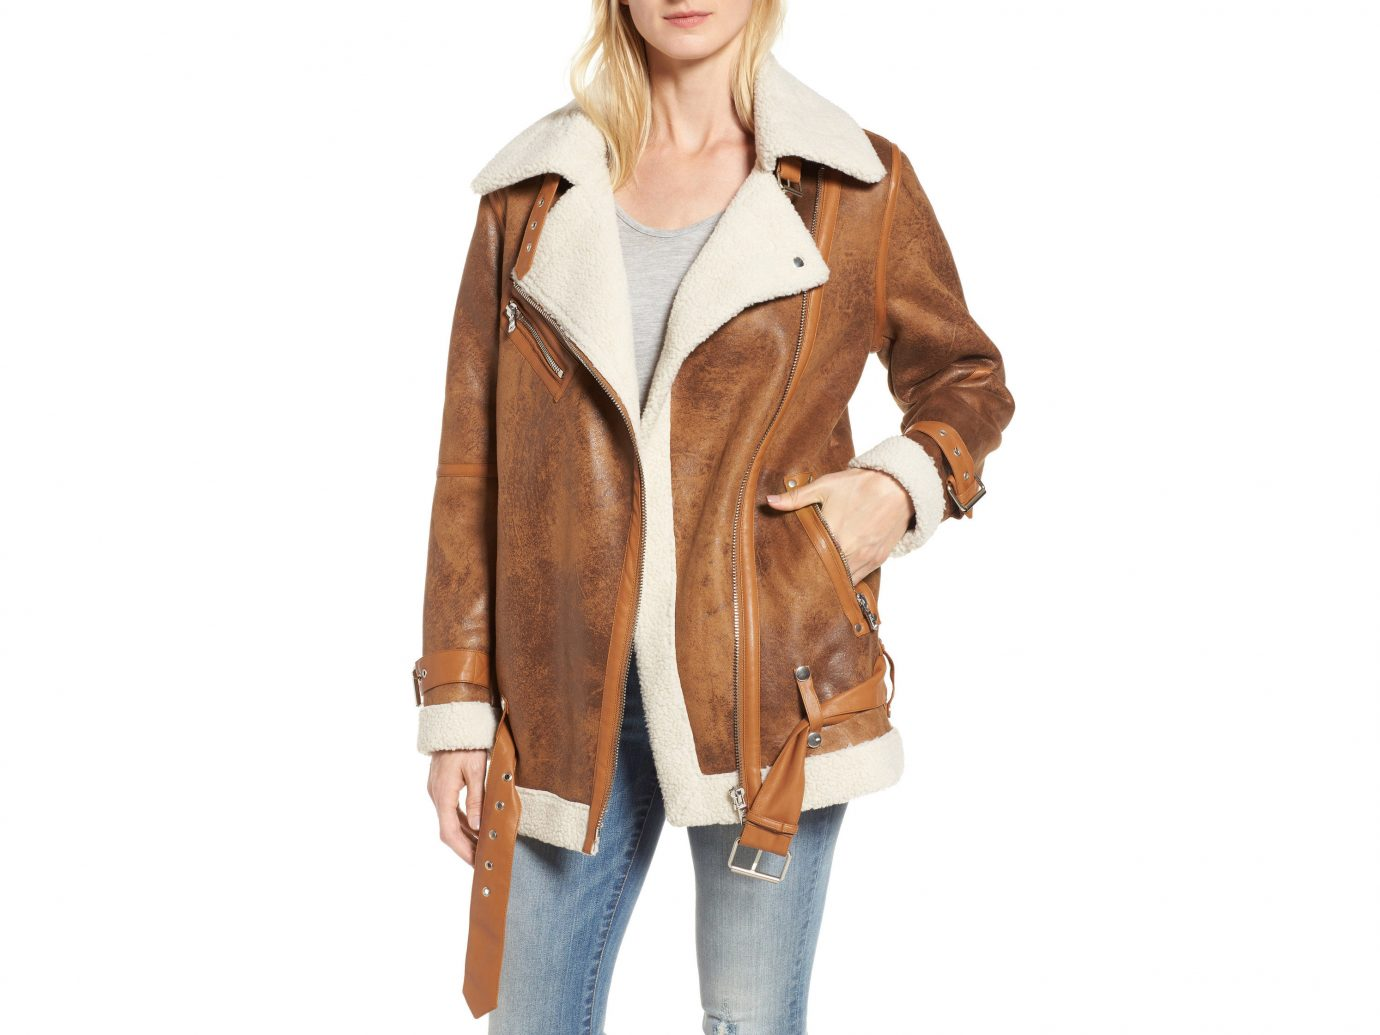 Fall Travel Style + Design Travel Shop Weekend Getaways person clothing coat jacket wearing fashion model leather jacket leather overcoat fur posing dressed